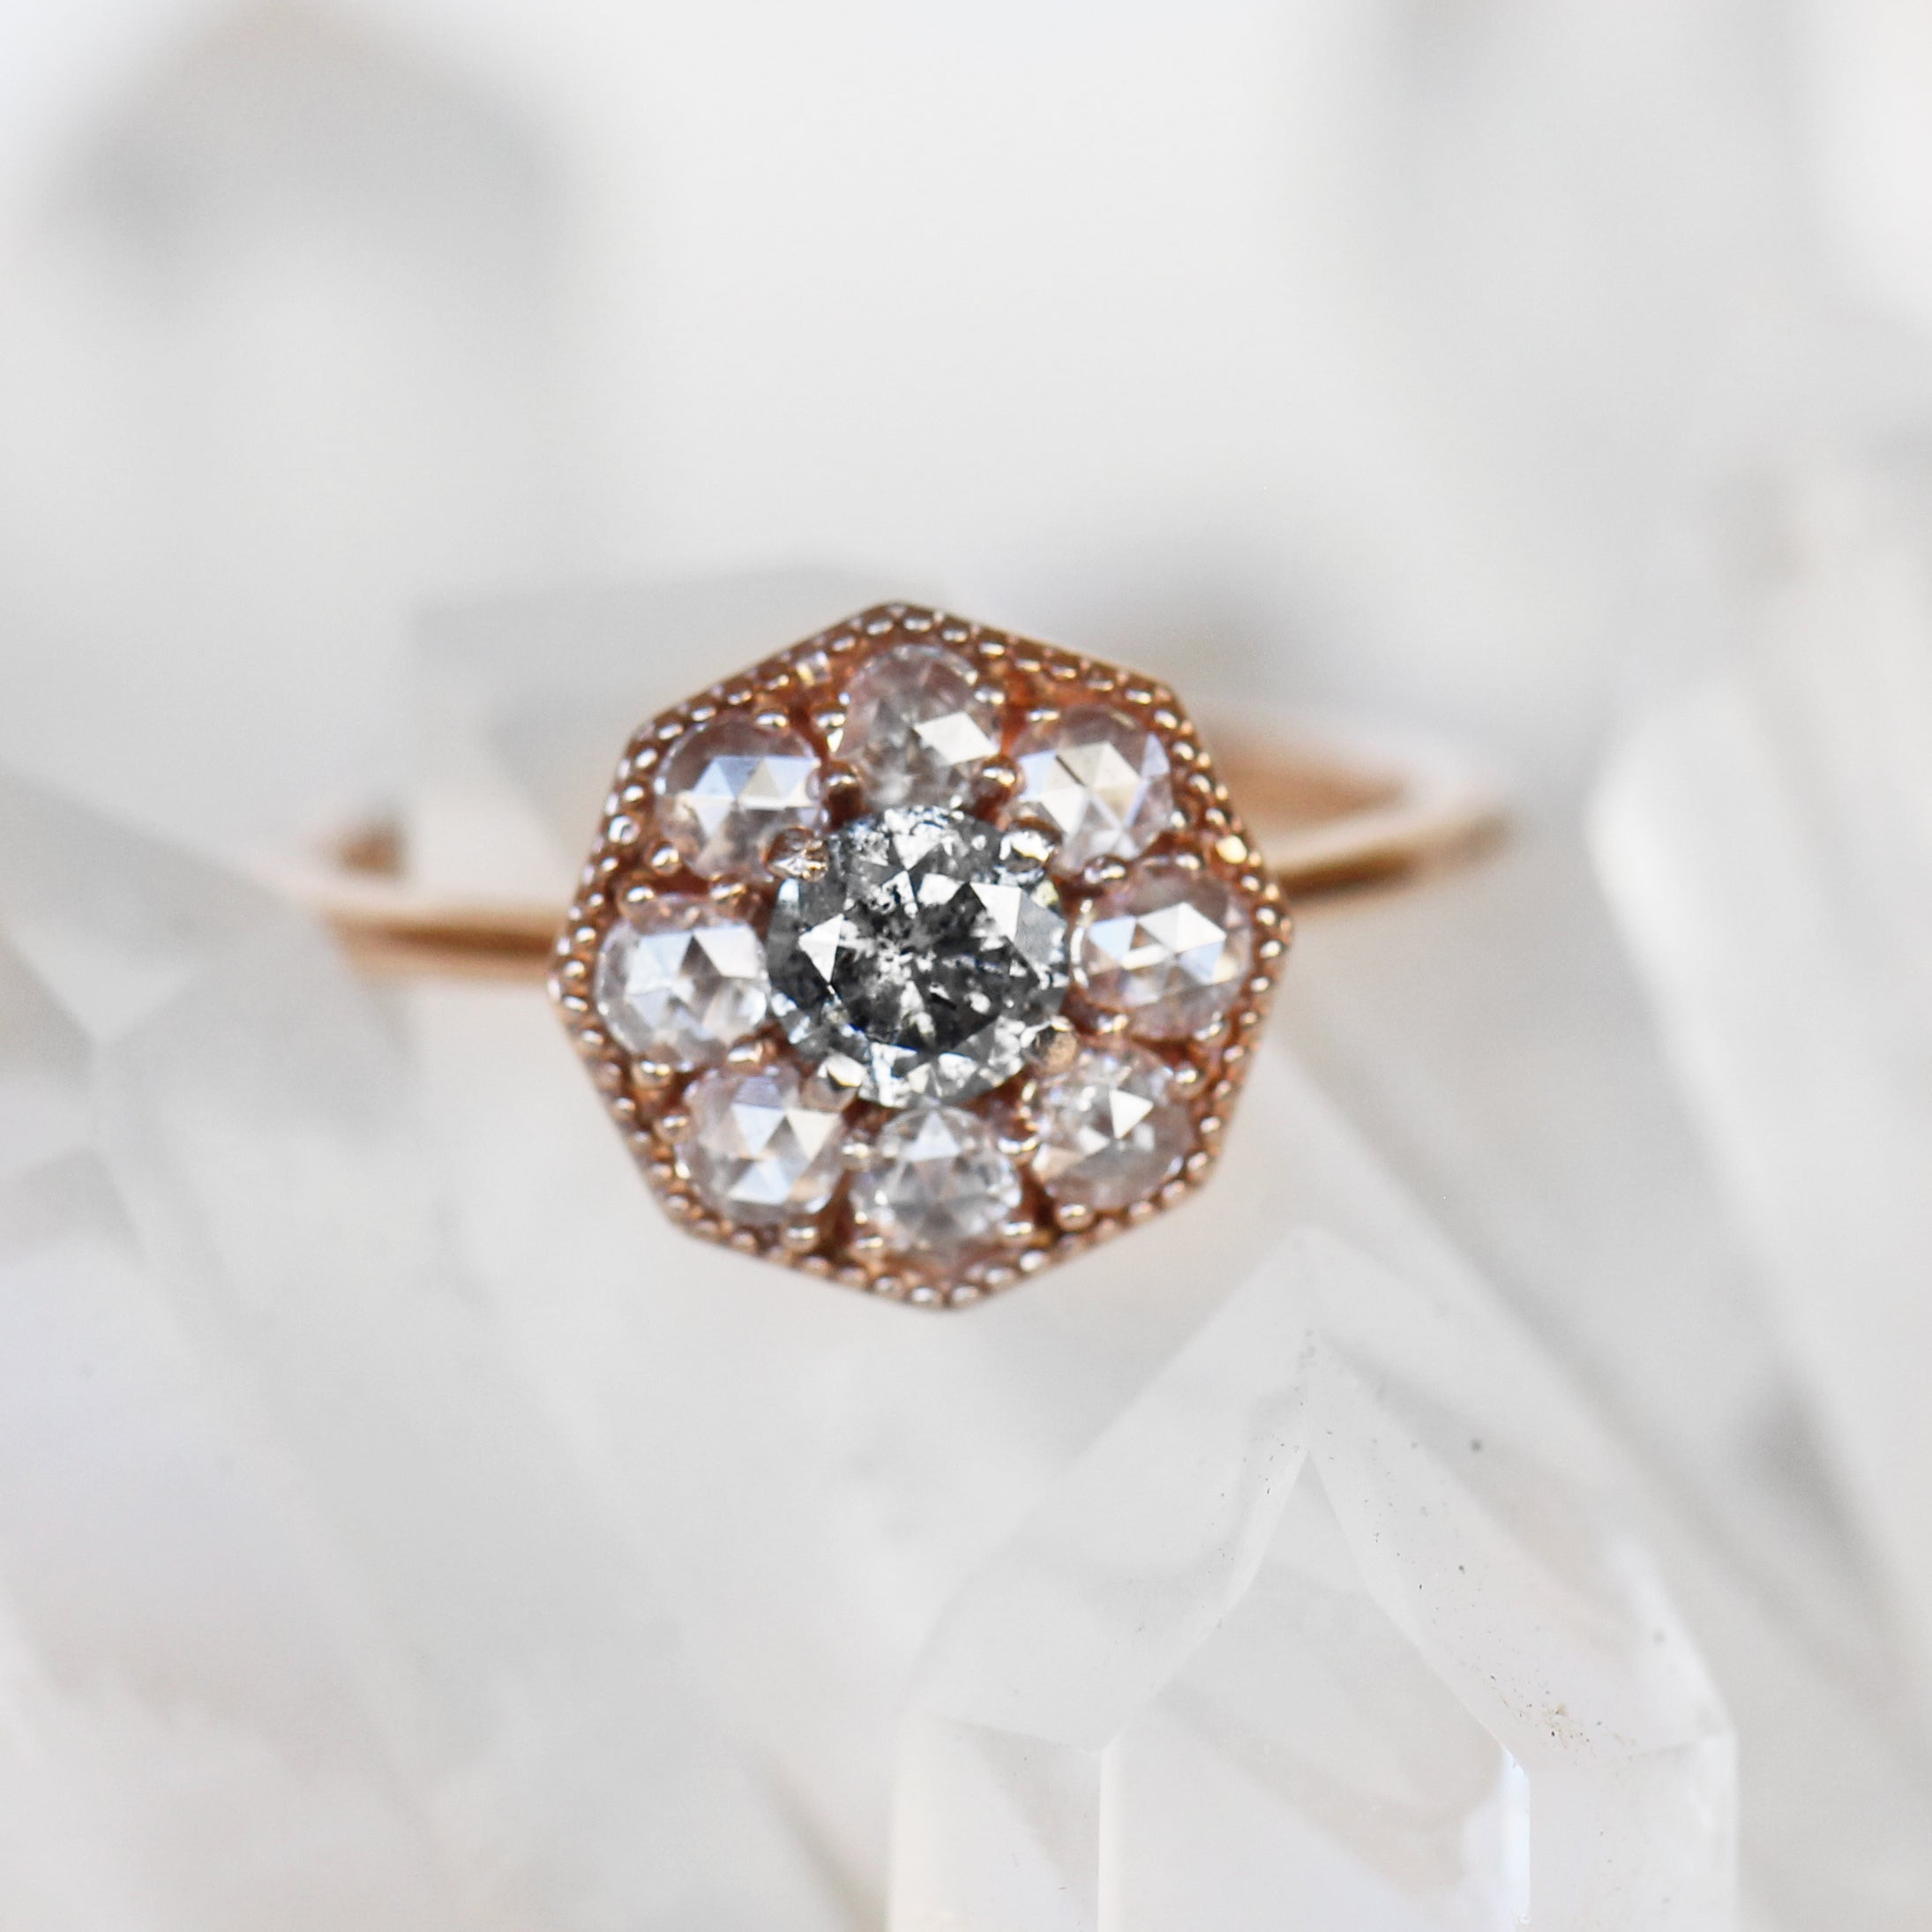 Ethel Ring with a Celestial Diamond in Your Choice of 14k Gold - Made to Order - Salt & Pepper Celestial Diamond Engagement Rings and Wedding Bands  by Midwinter Co.